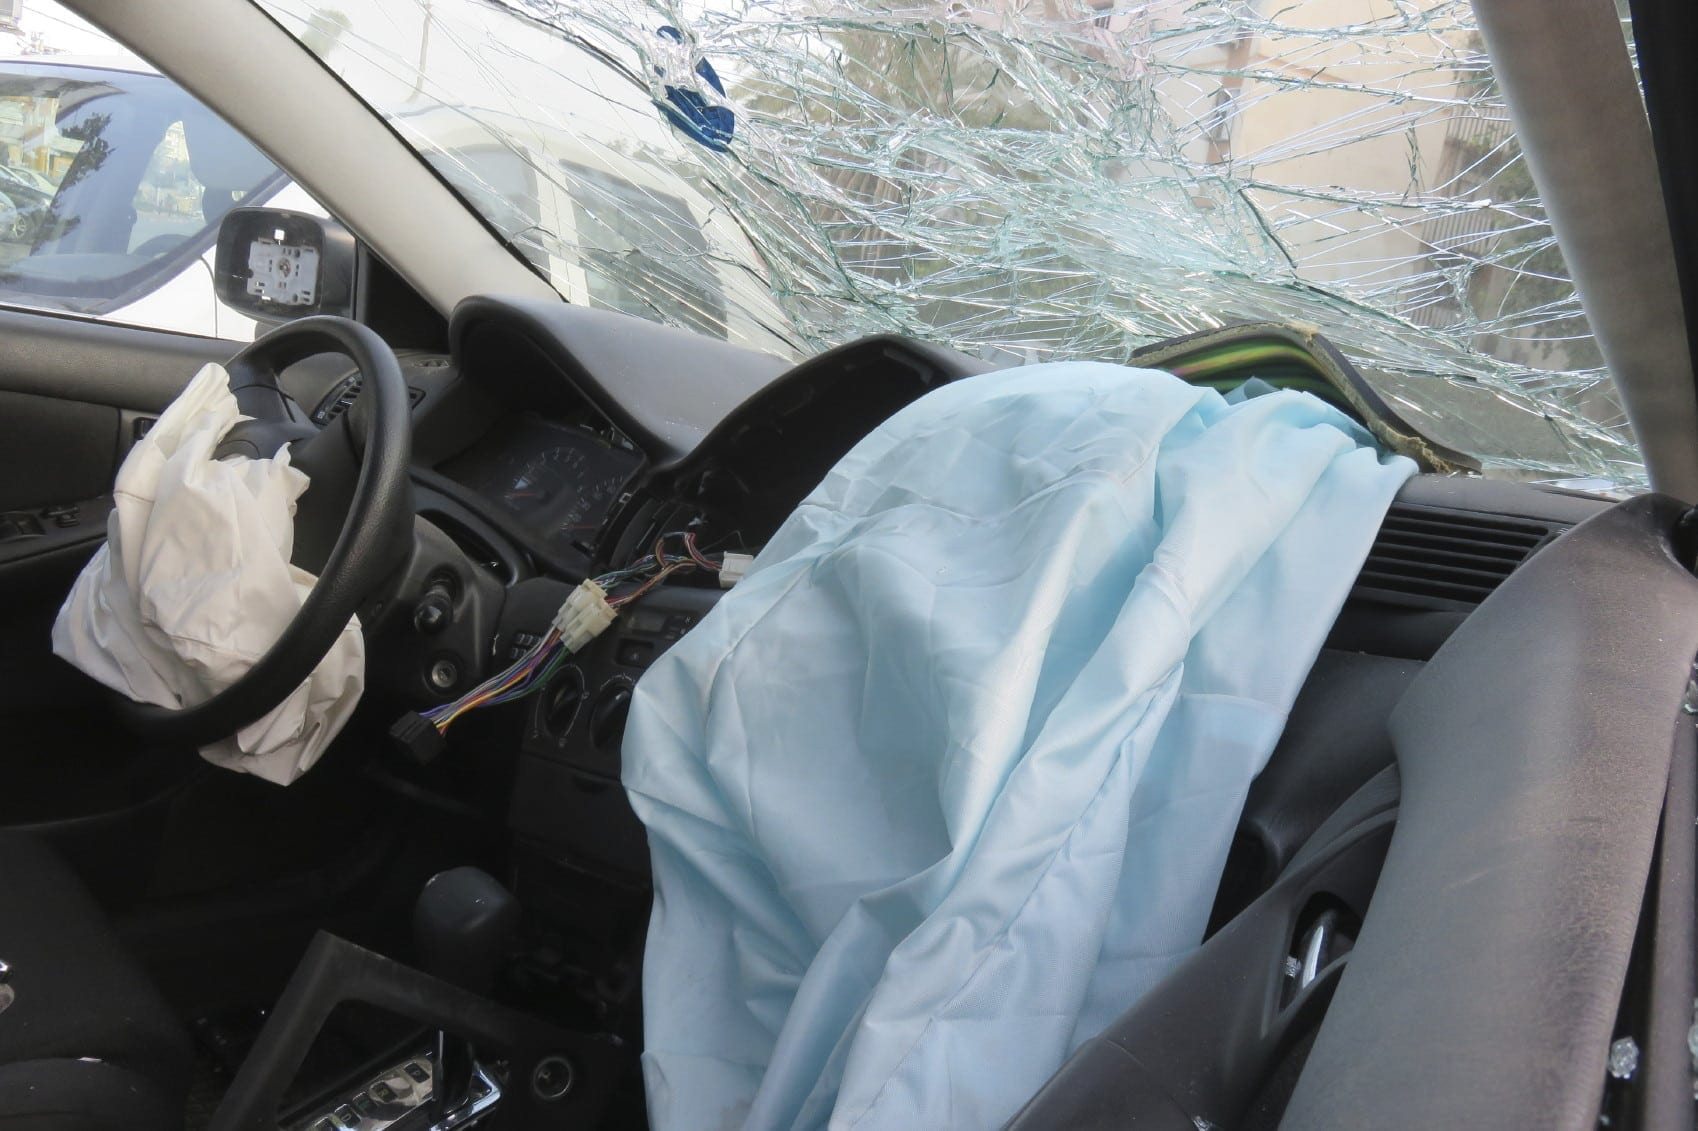 Broken Windshield Following Car Accident Stock Photo